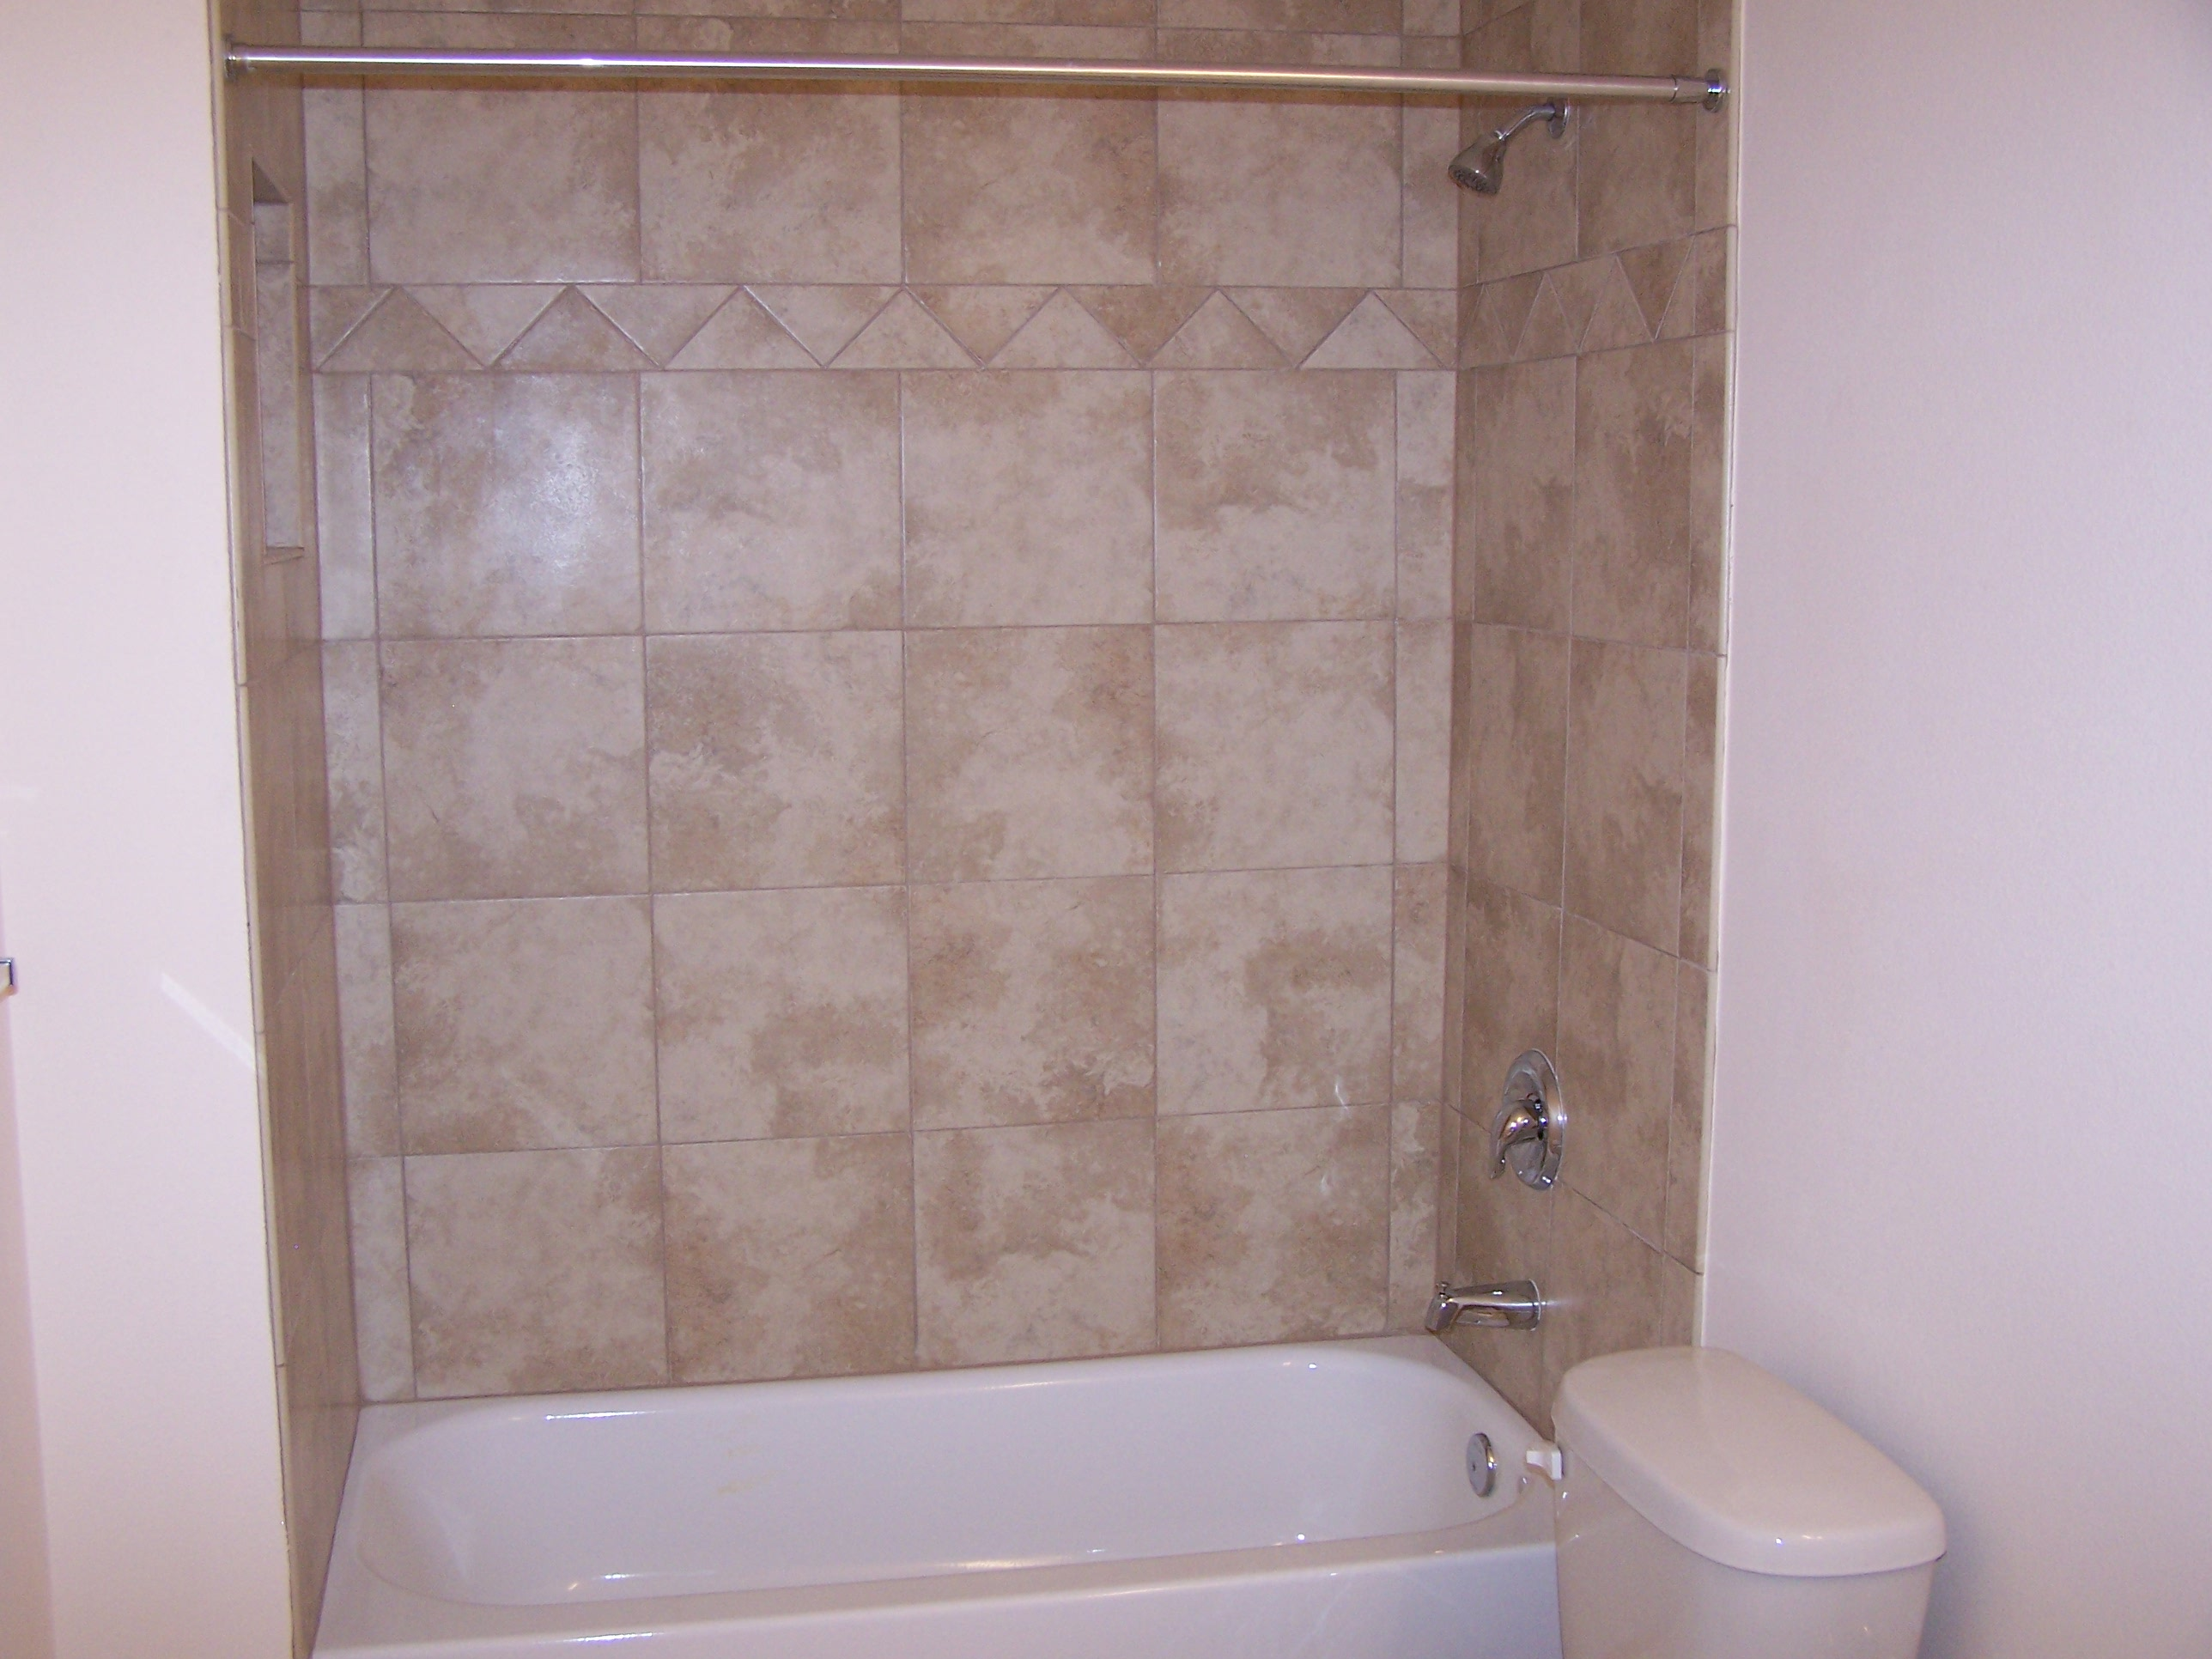 25 pictures of ceramic tile patterns for showers Tile bathroom